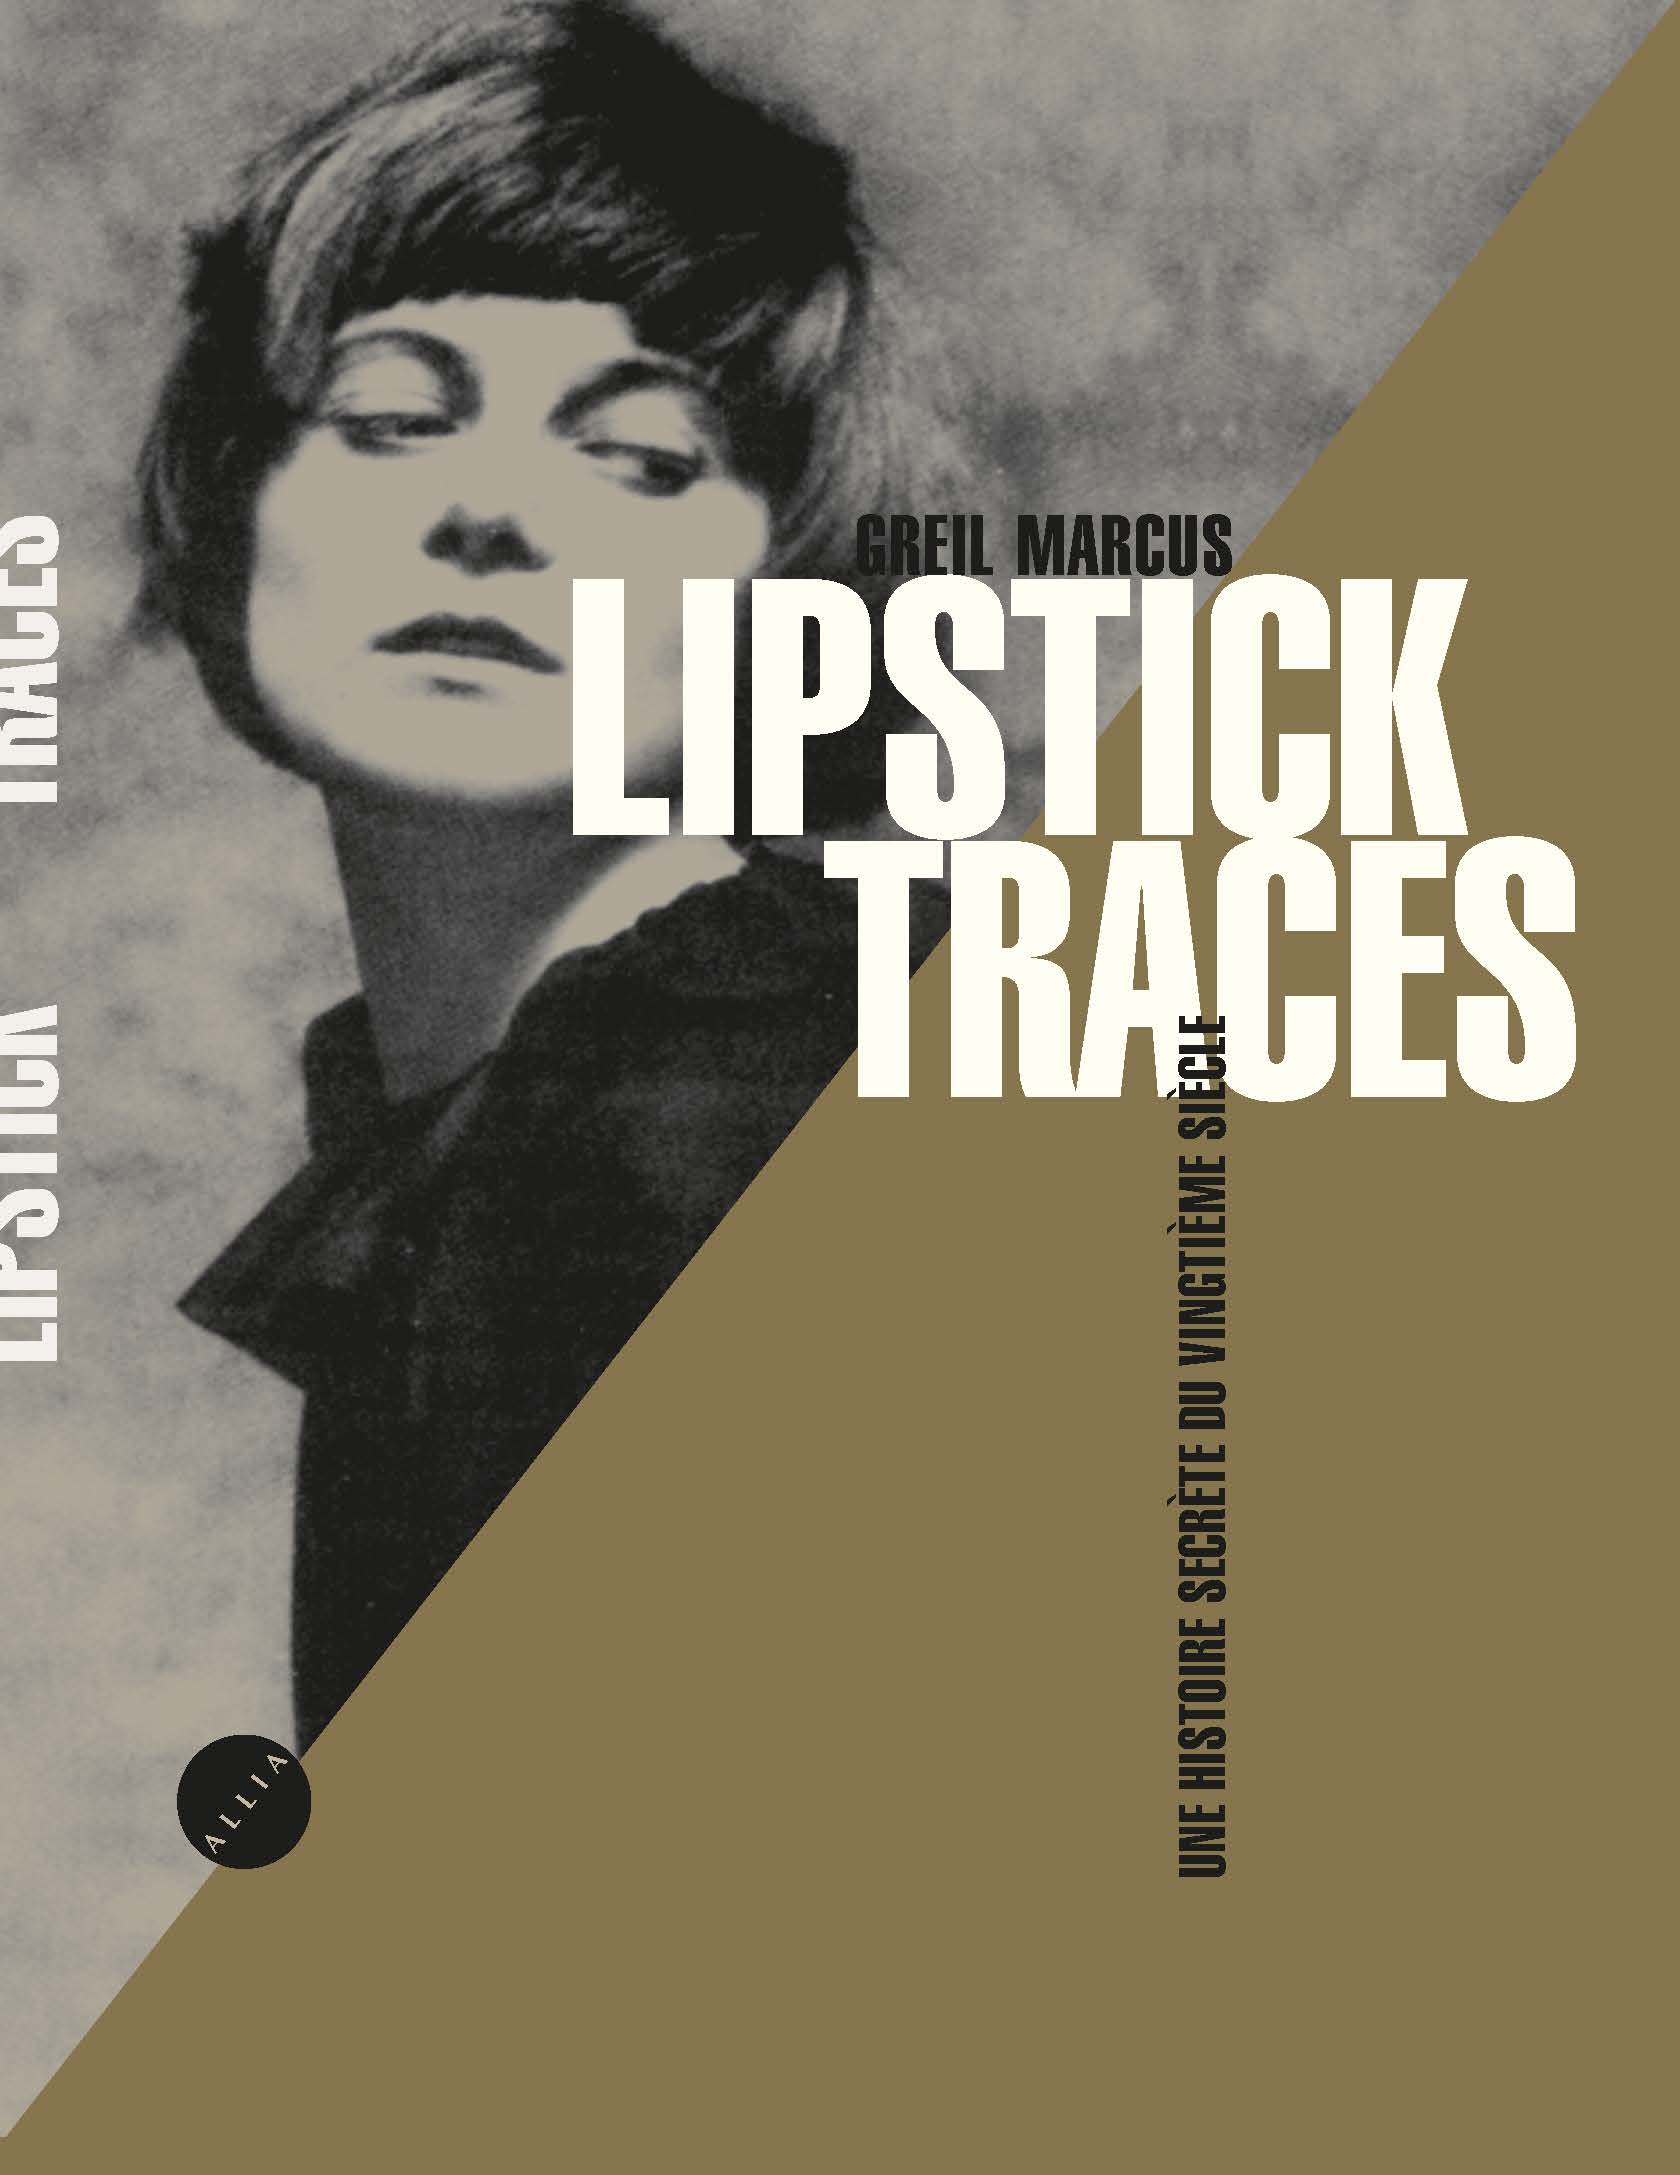 Image result for lipstick traces marcus